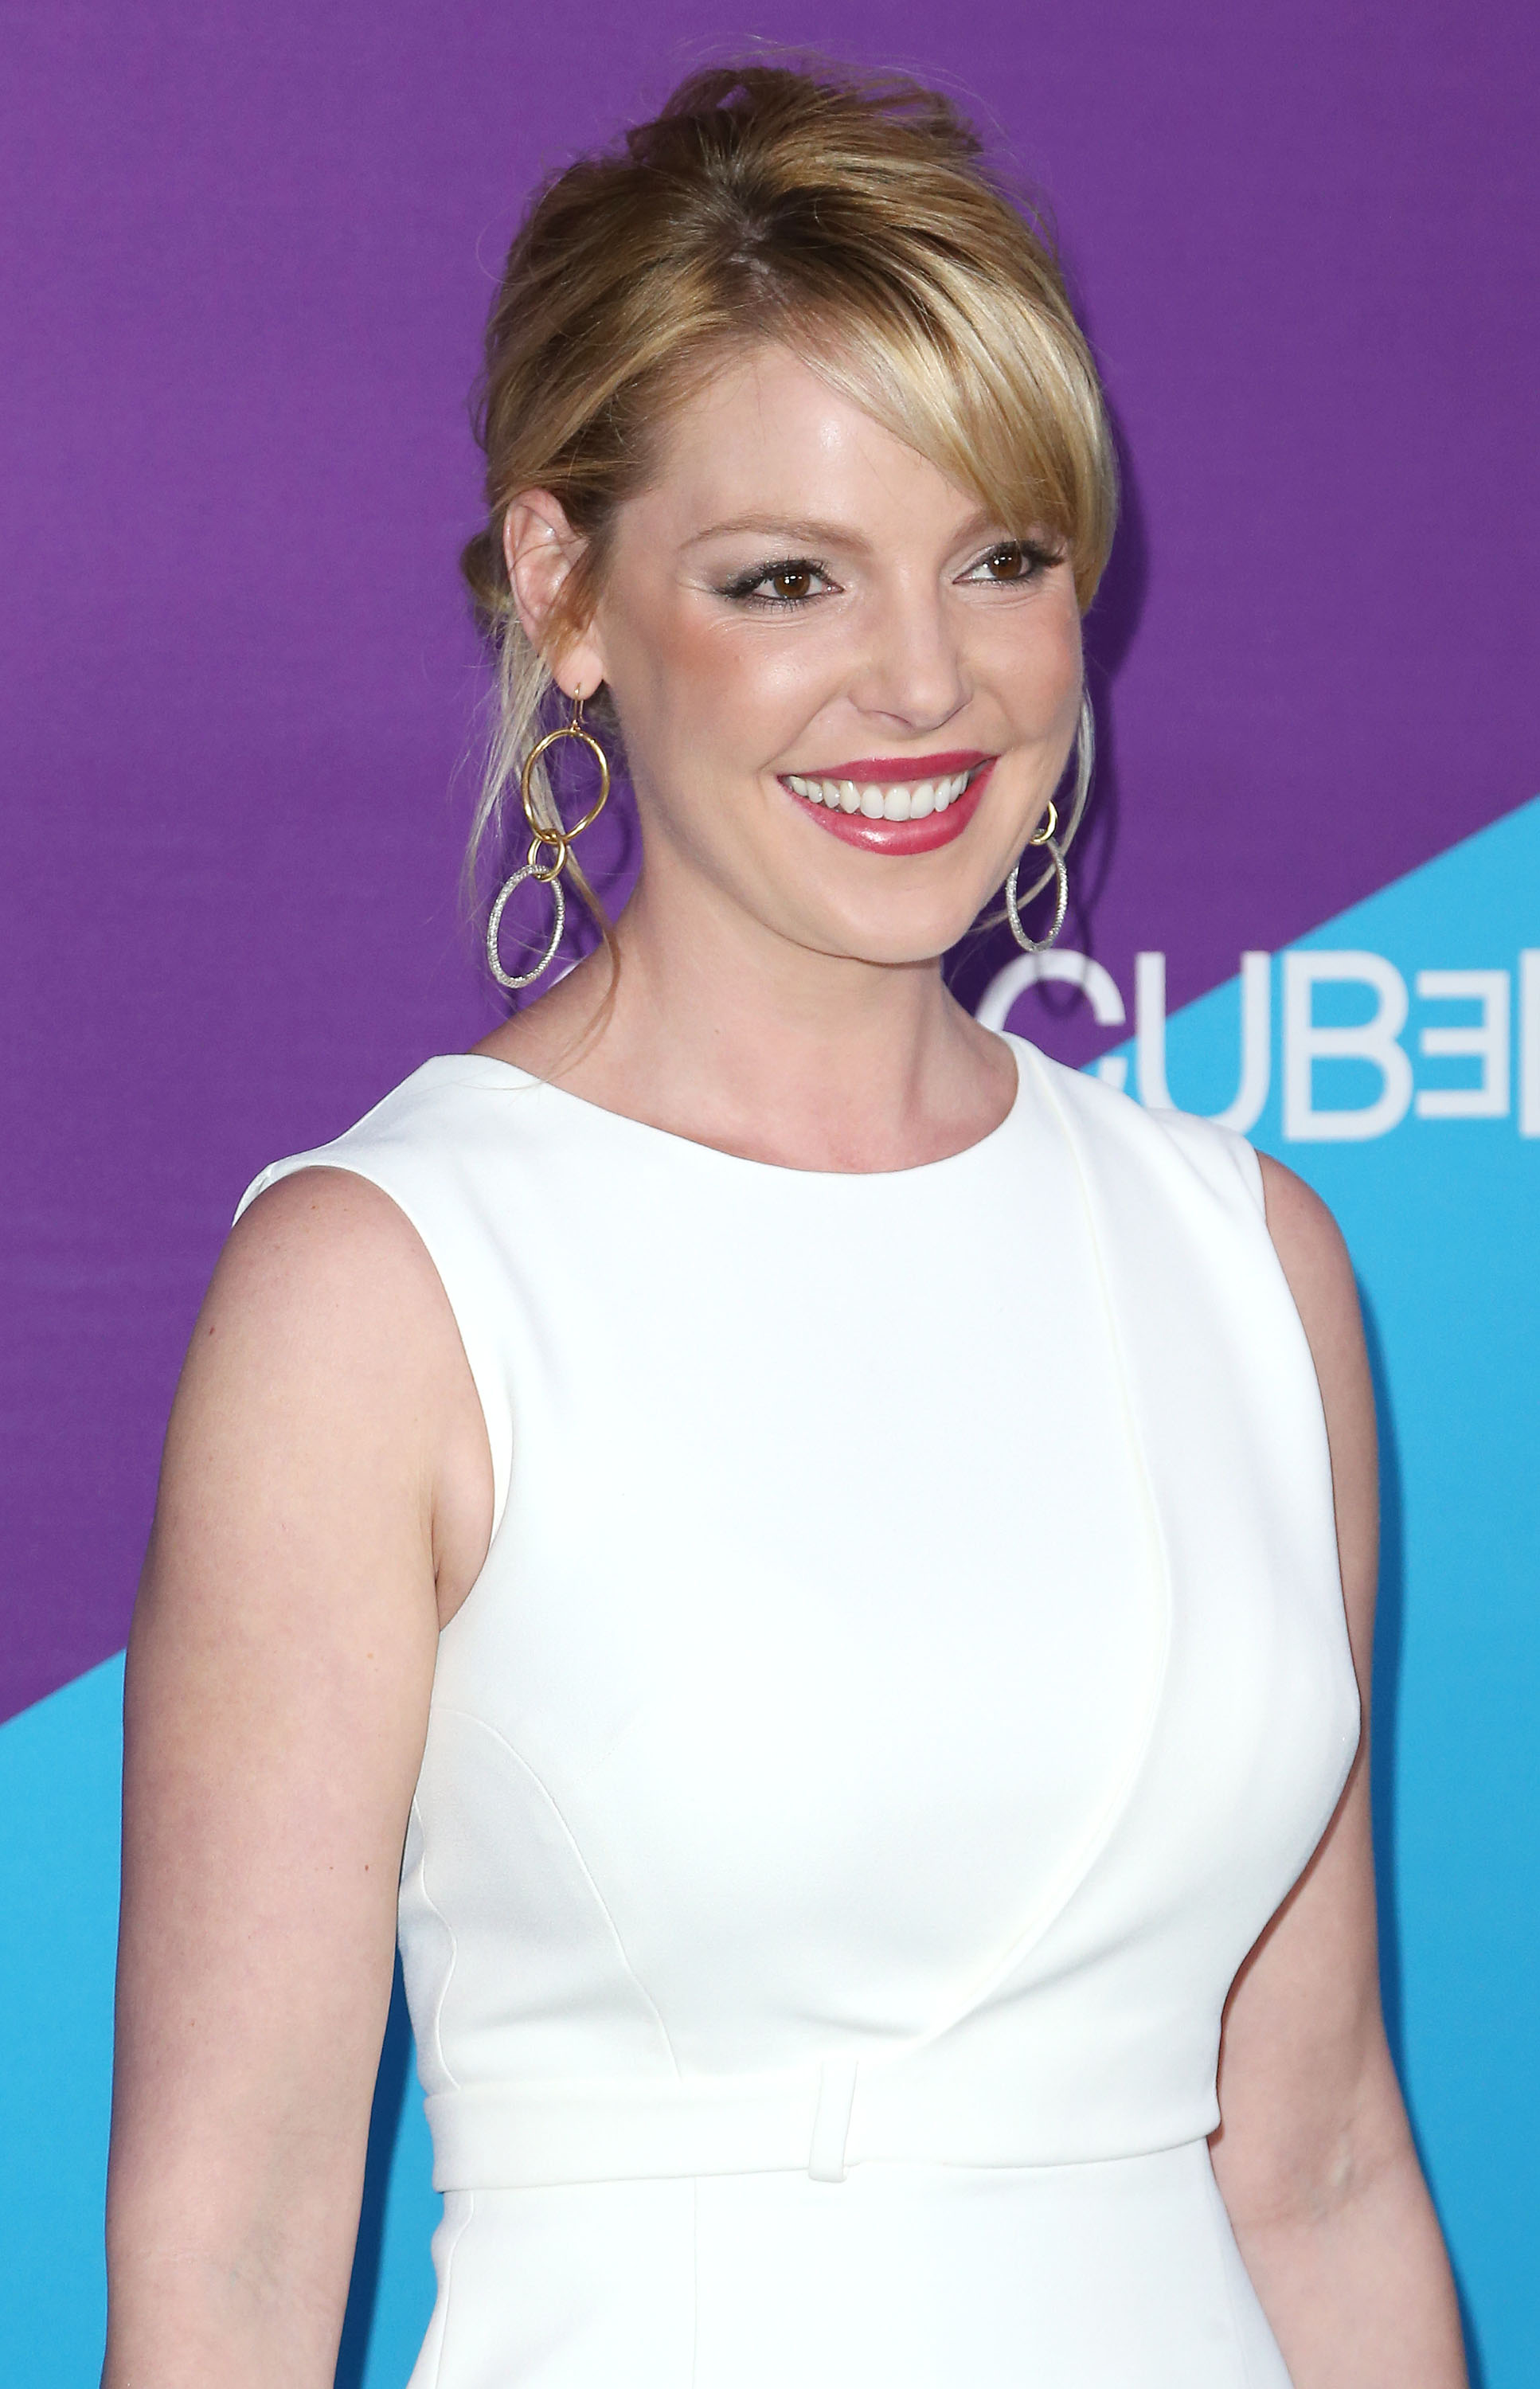 Katherine Heigl at Sony Pictures Studios on Feb. 27, 2014 in Culver City, California.